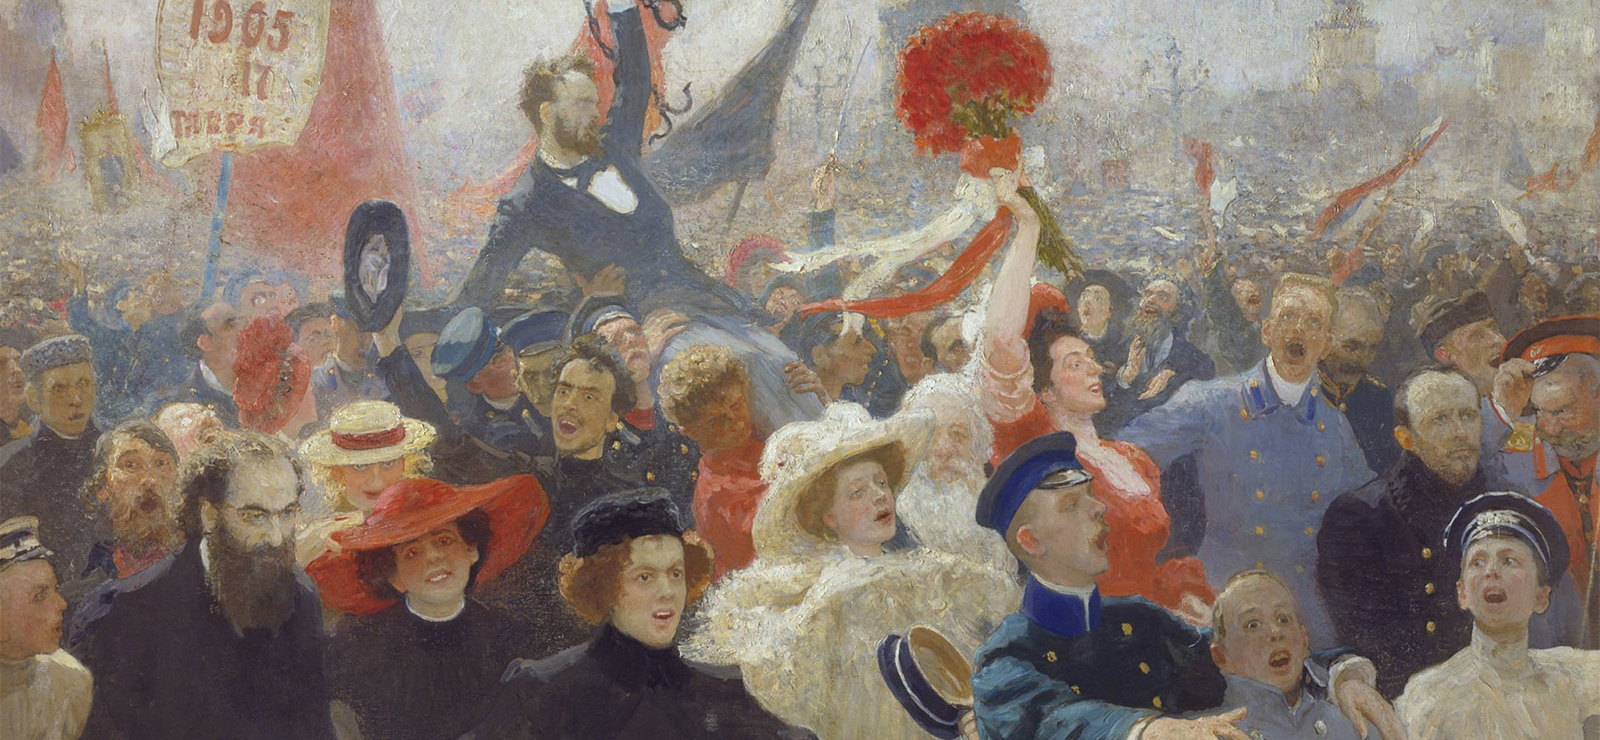 [Panel TwoRussia Under Western Eyes] Demonstration on October 17, 1905 by Ilya Repin. Wikimedia Commons